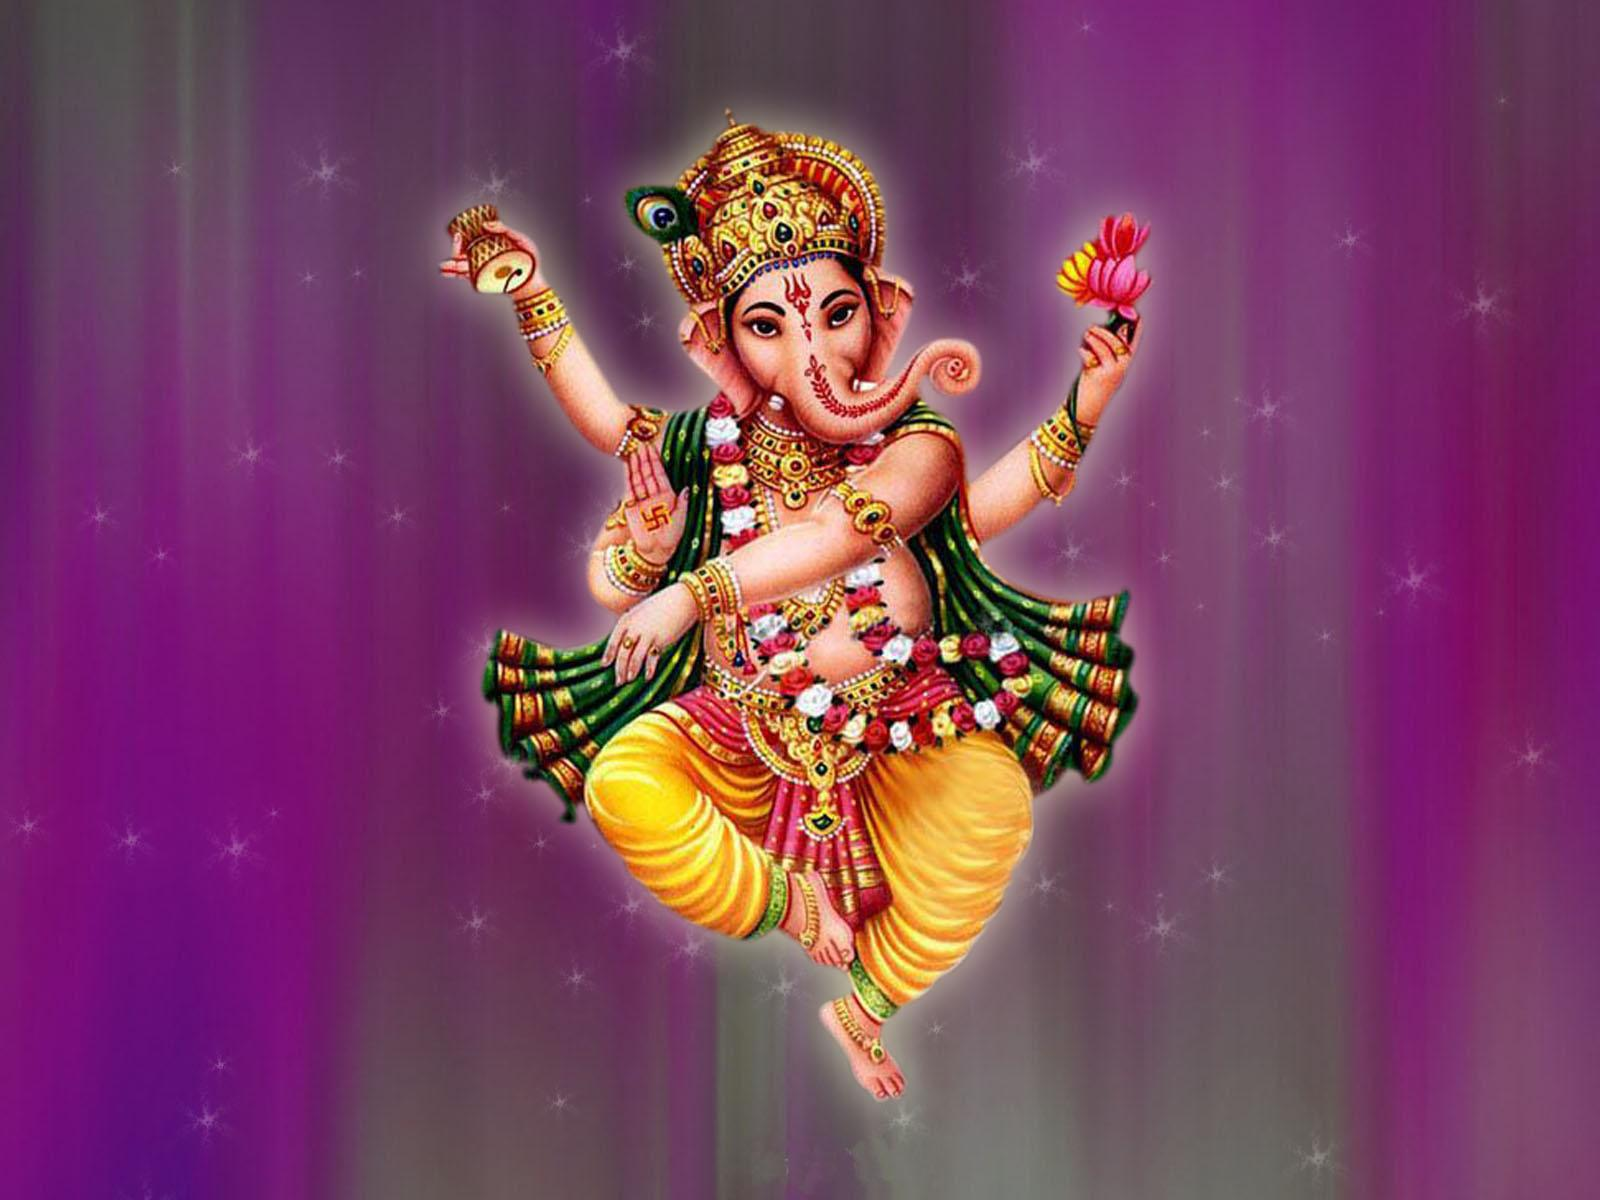 Hd wallpaper ganesh - God Images Ganesh